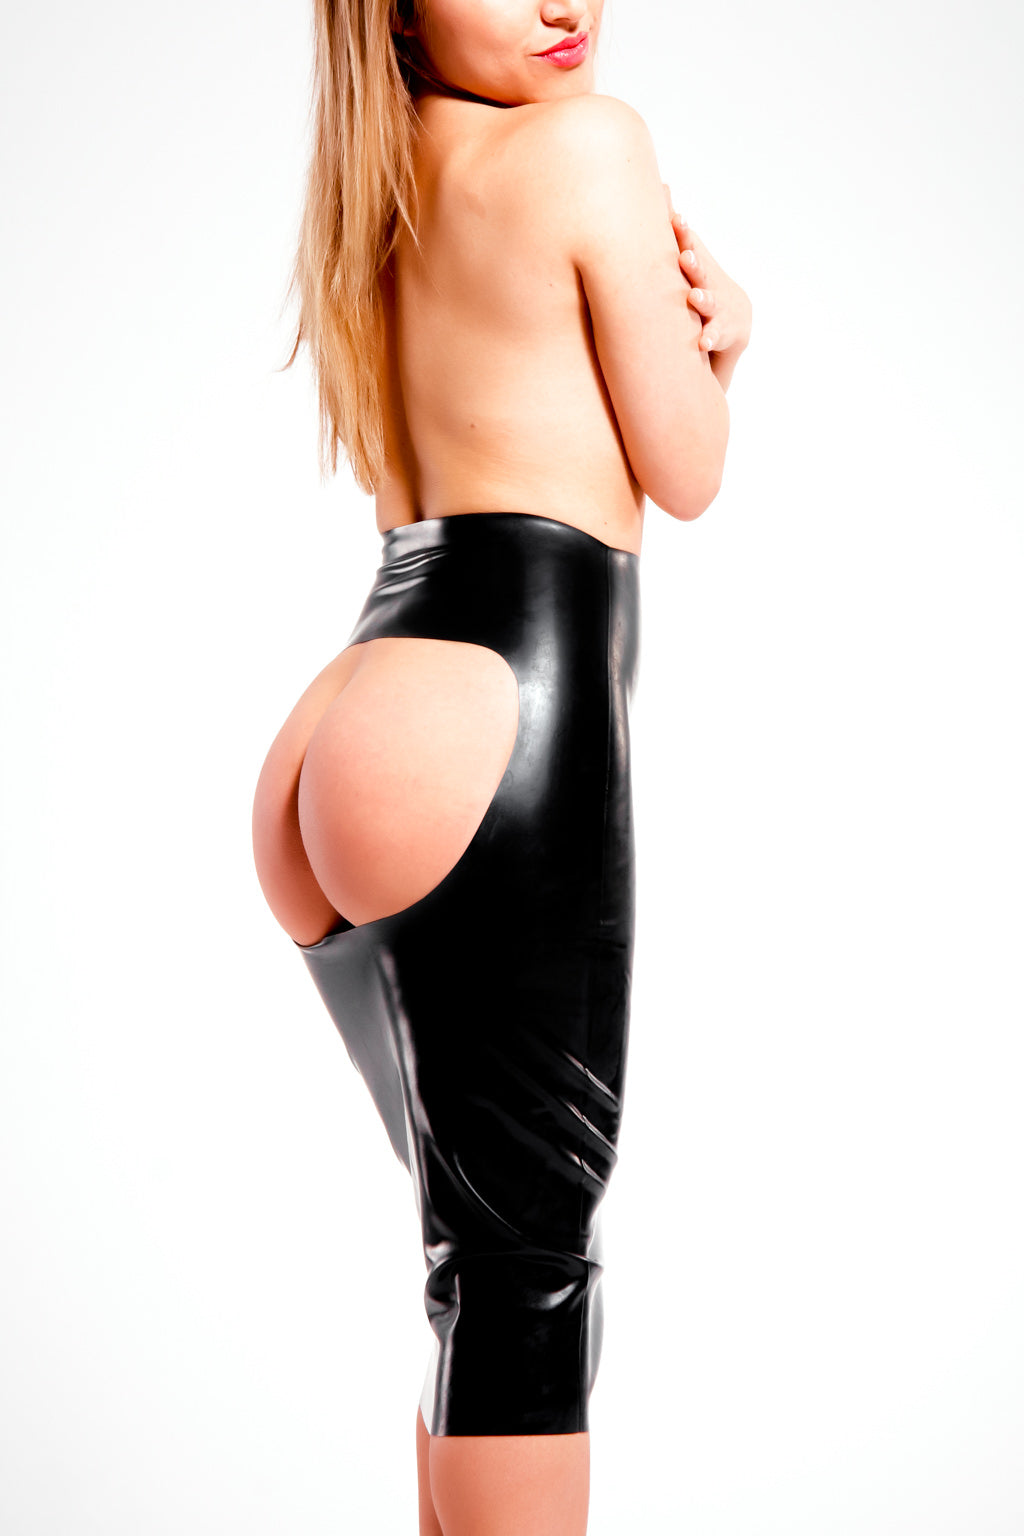 A woman wearing a black latex spanking skirt. A rear view, showing her ass.